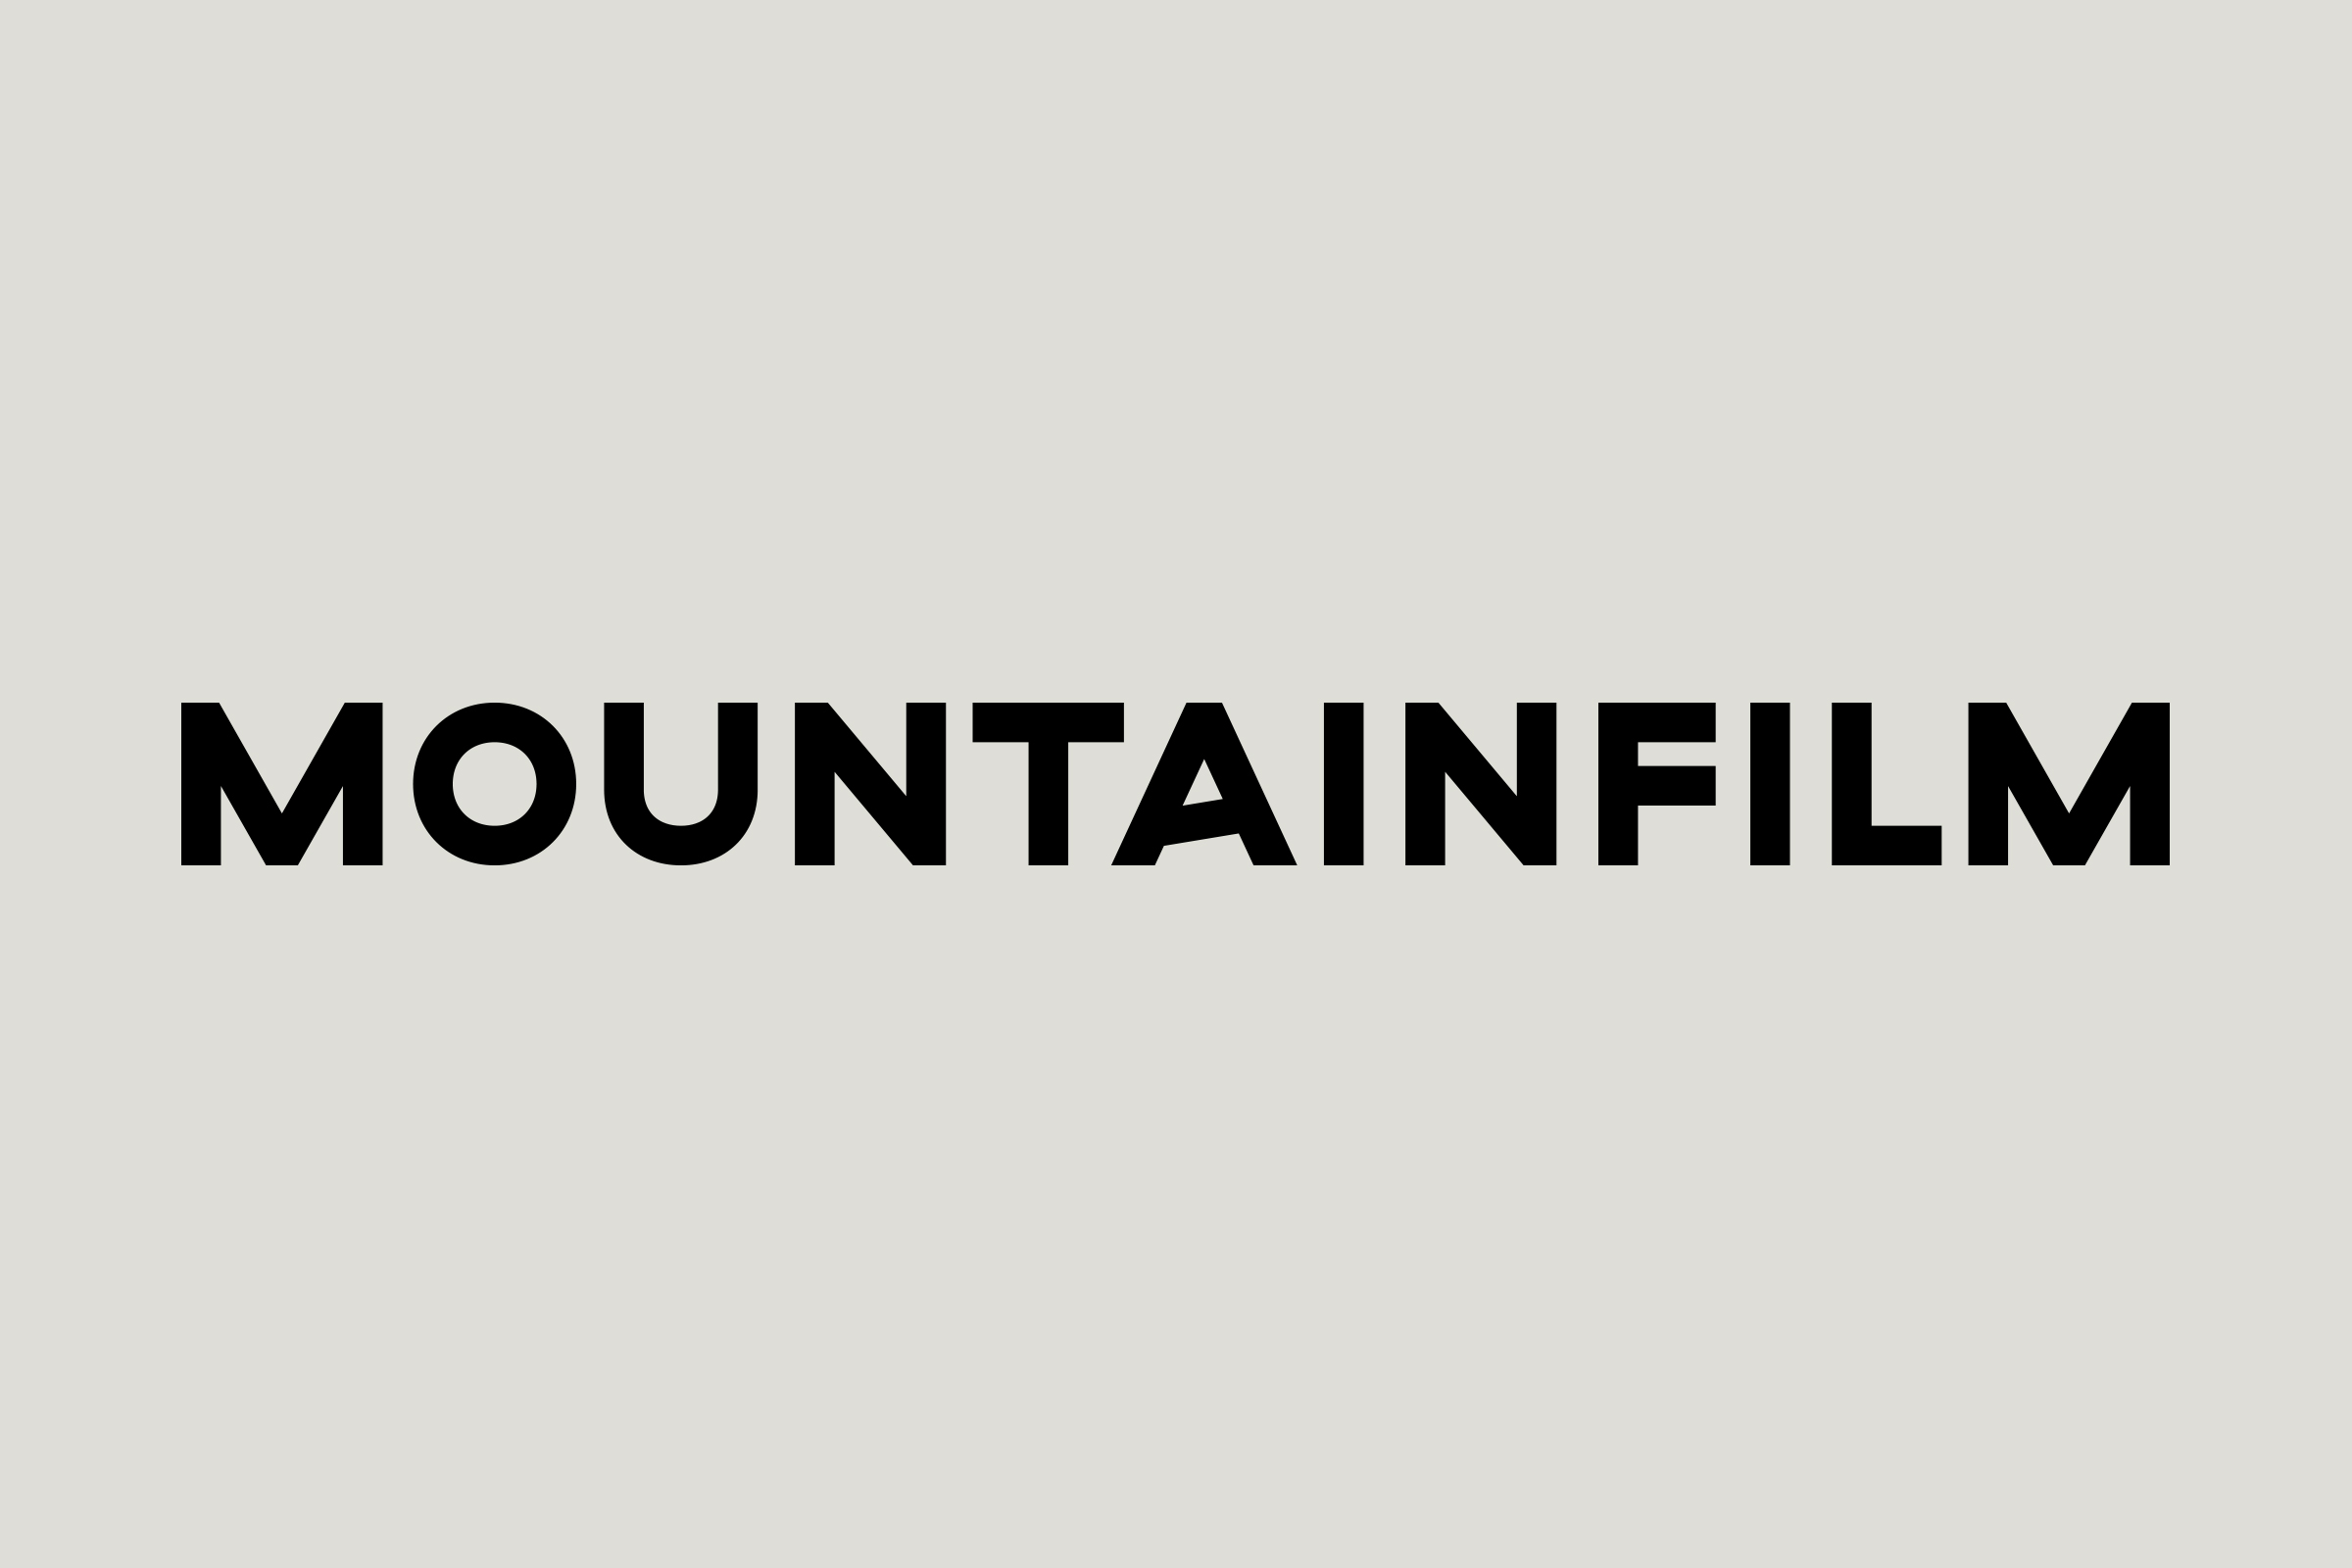 Mountainfilm_image1a